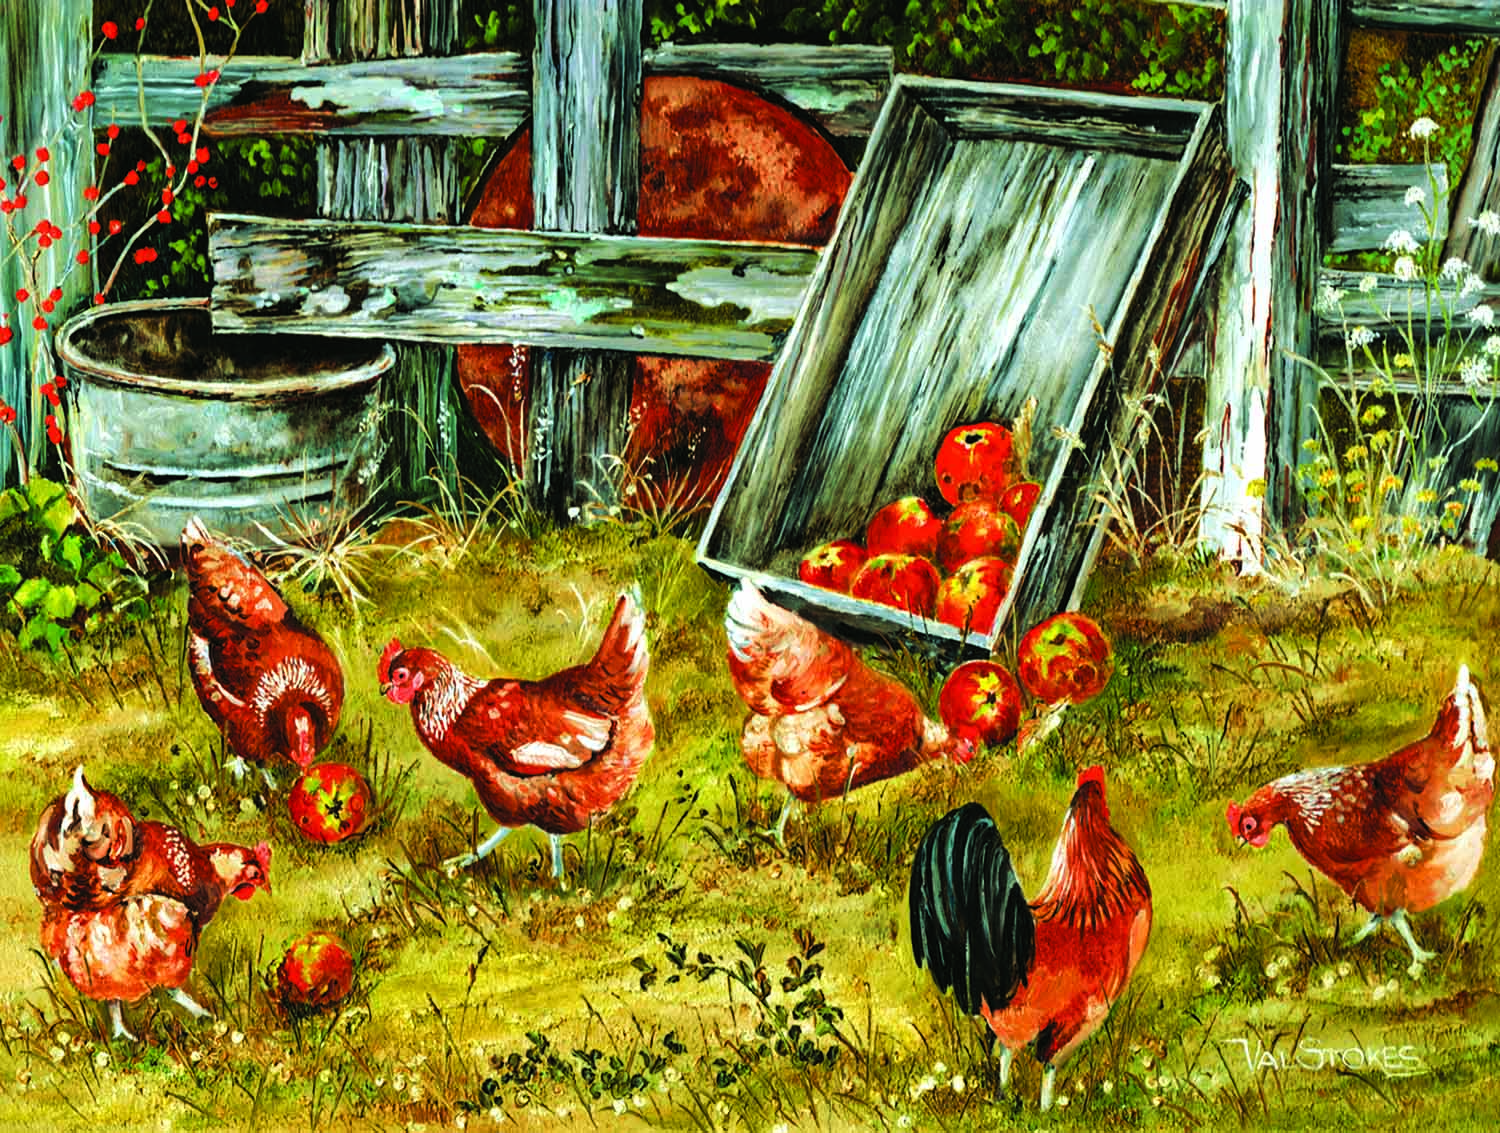 Pickin Chickens 500 Piece Jigsaw by SunsOut